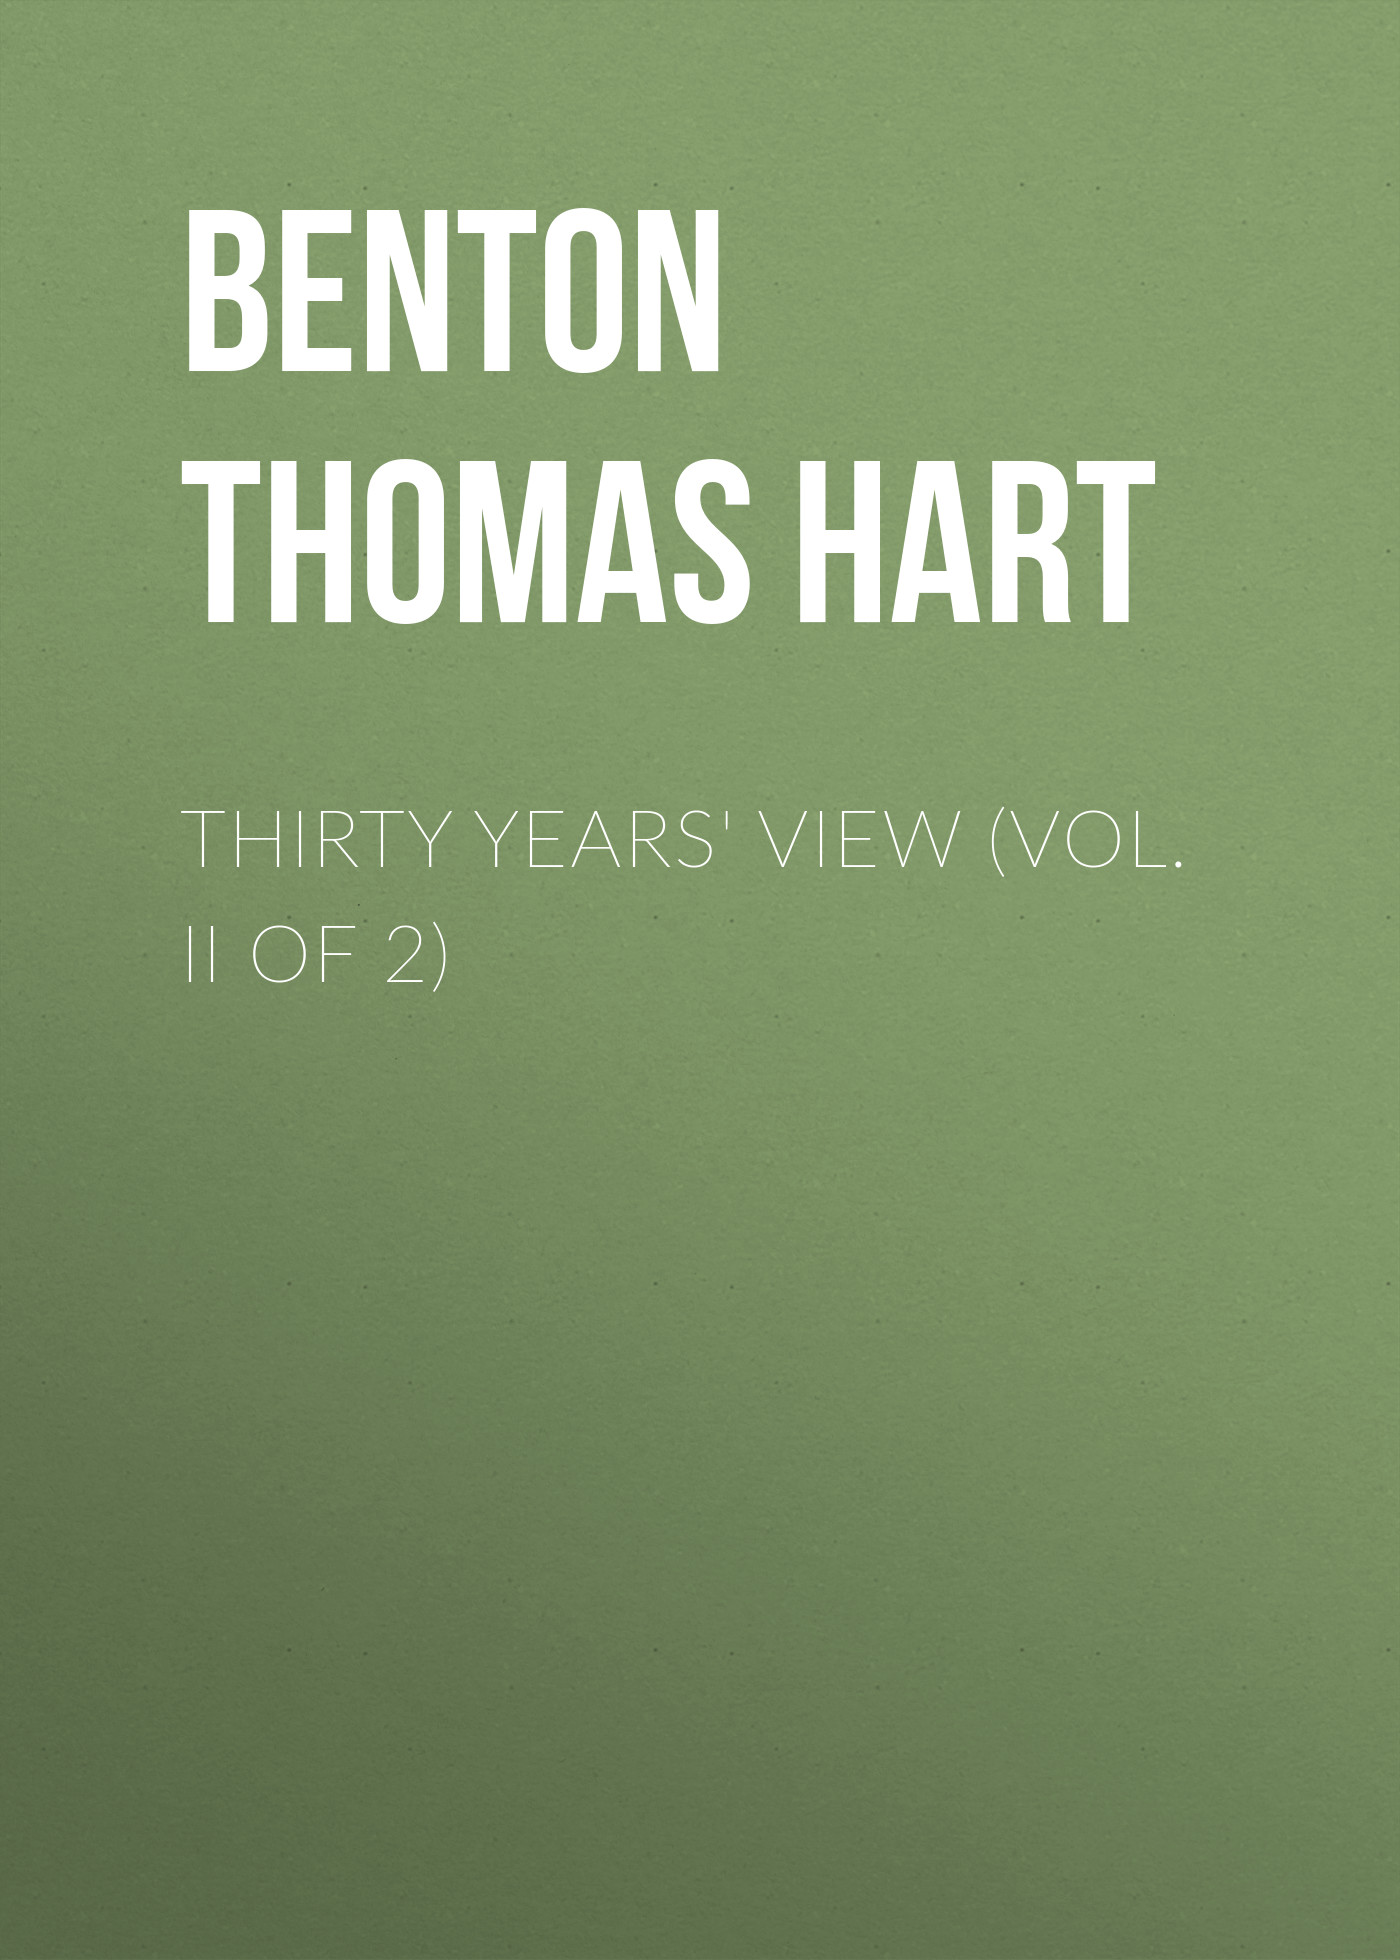 Benton Thomas Hart Thirty Years' View (Vol. II of 2) neil williamson elaine gallagher cameron johnston thirty years of rain